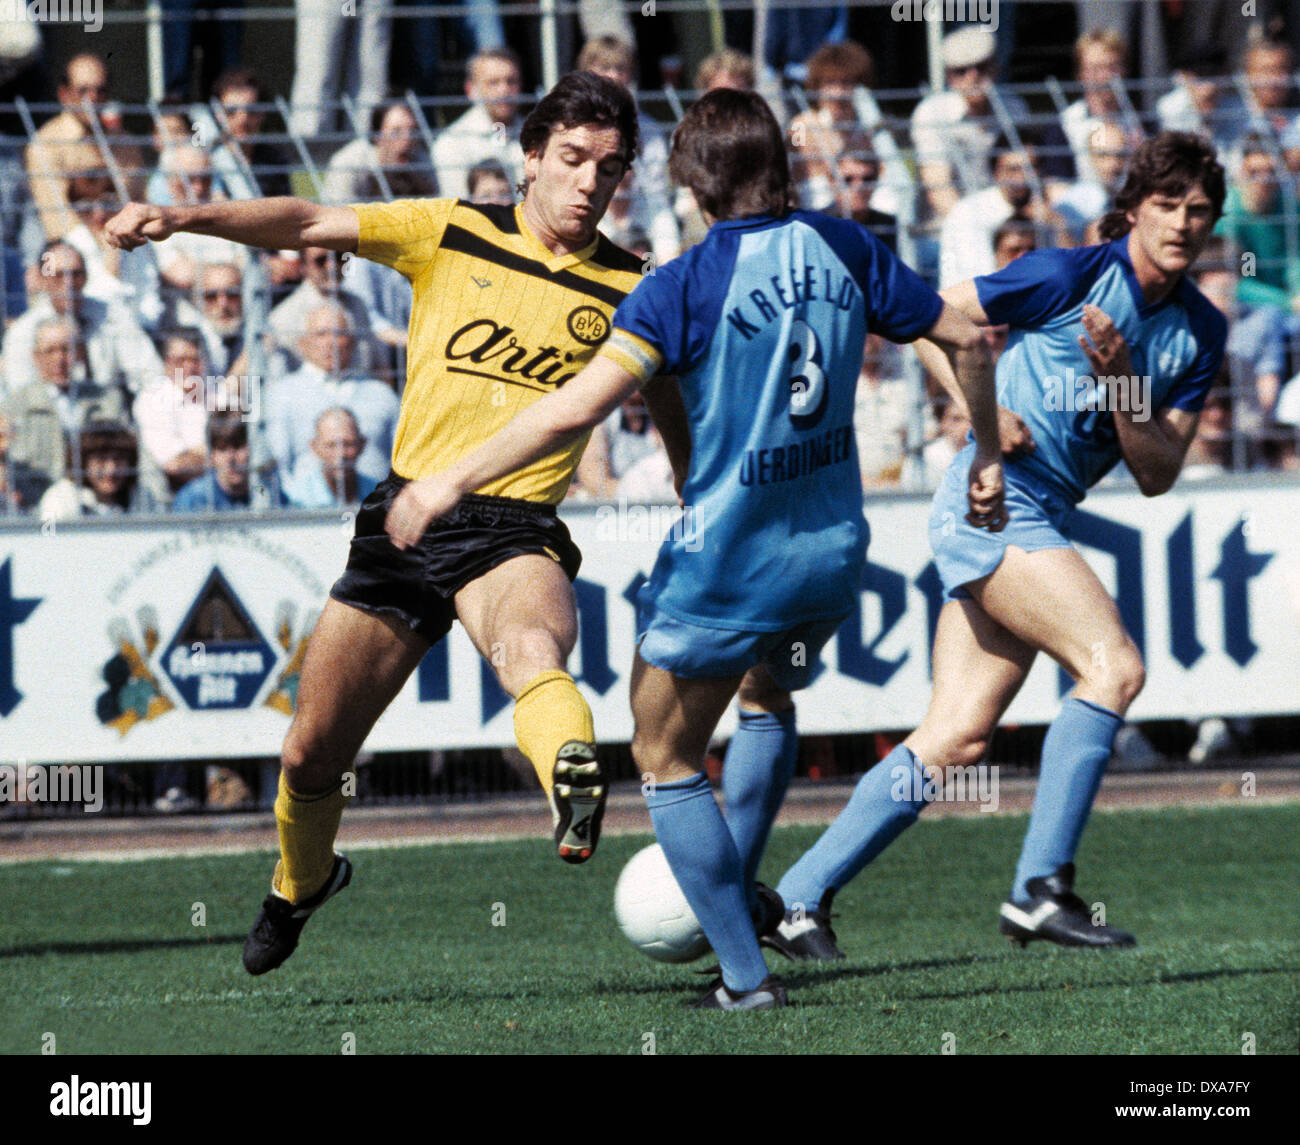 football, Bundesliga, 1983/1984, Grotenburg Stadium, FC Bayer 05 Uerdingen versus Borussia Dortmund 2:1, scene of the match, f.l.t.r. Bernd Klotz (BVB), team leader Matthias Herget (Bayer), Dietmar Klinger (Bayer) - Stock Image